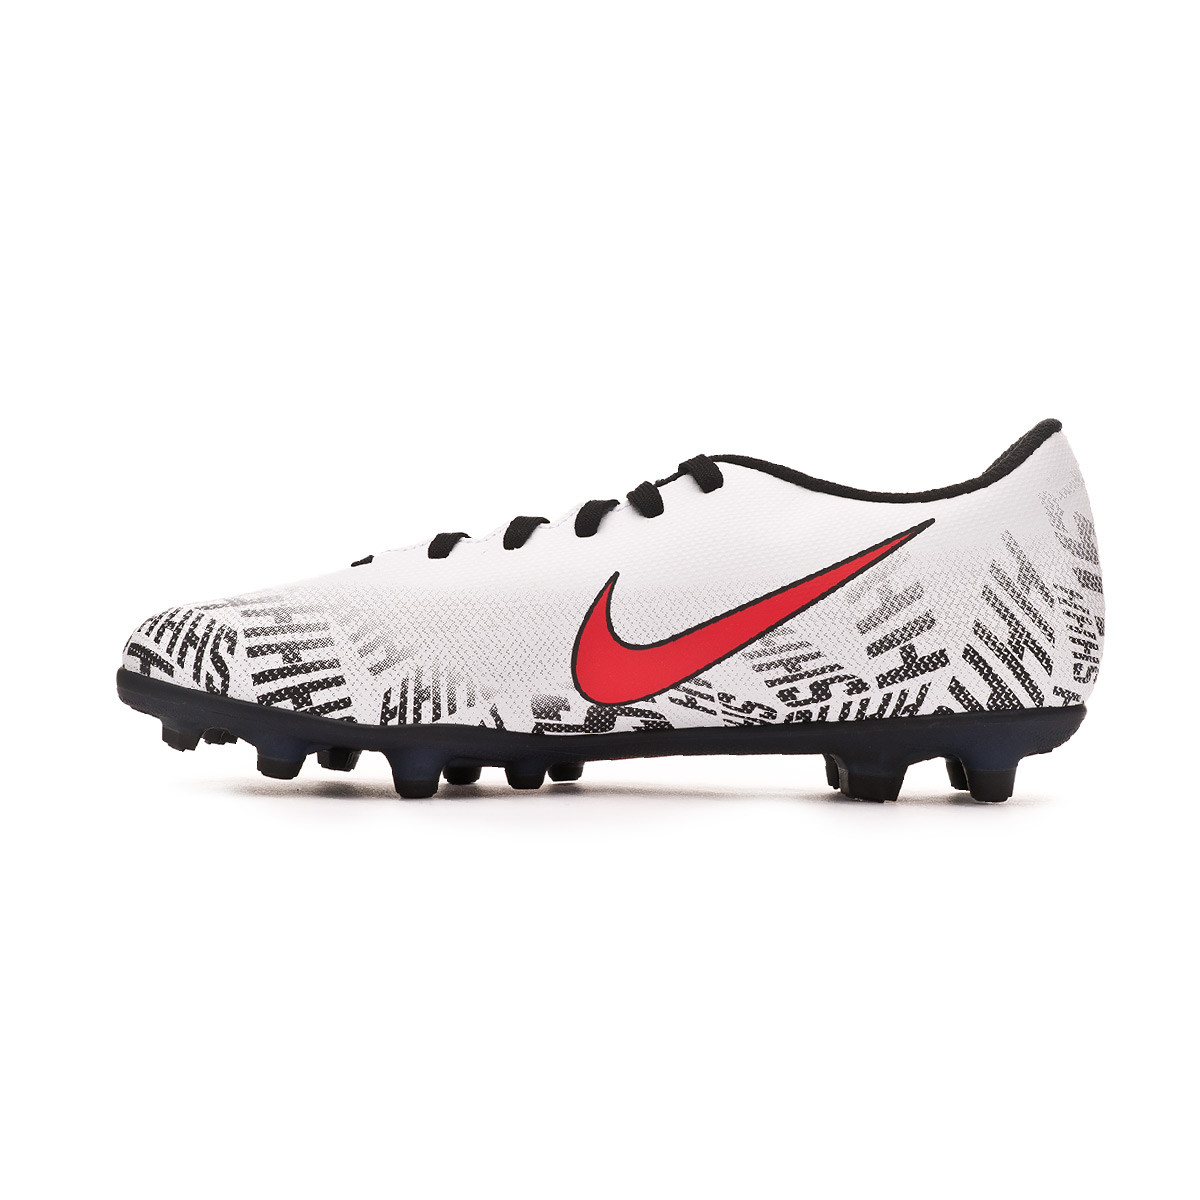 baed0e6be Football Boots Nike Mercurial Vapor XII Club Neymar Jr MG White-Challenge  red-Black - Football store Fútbol Emotion